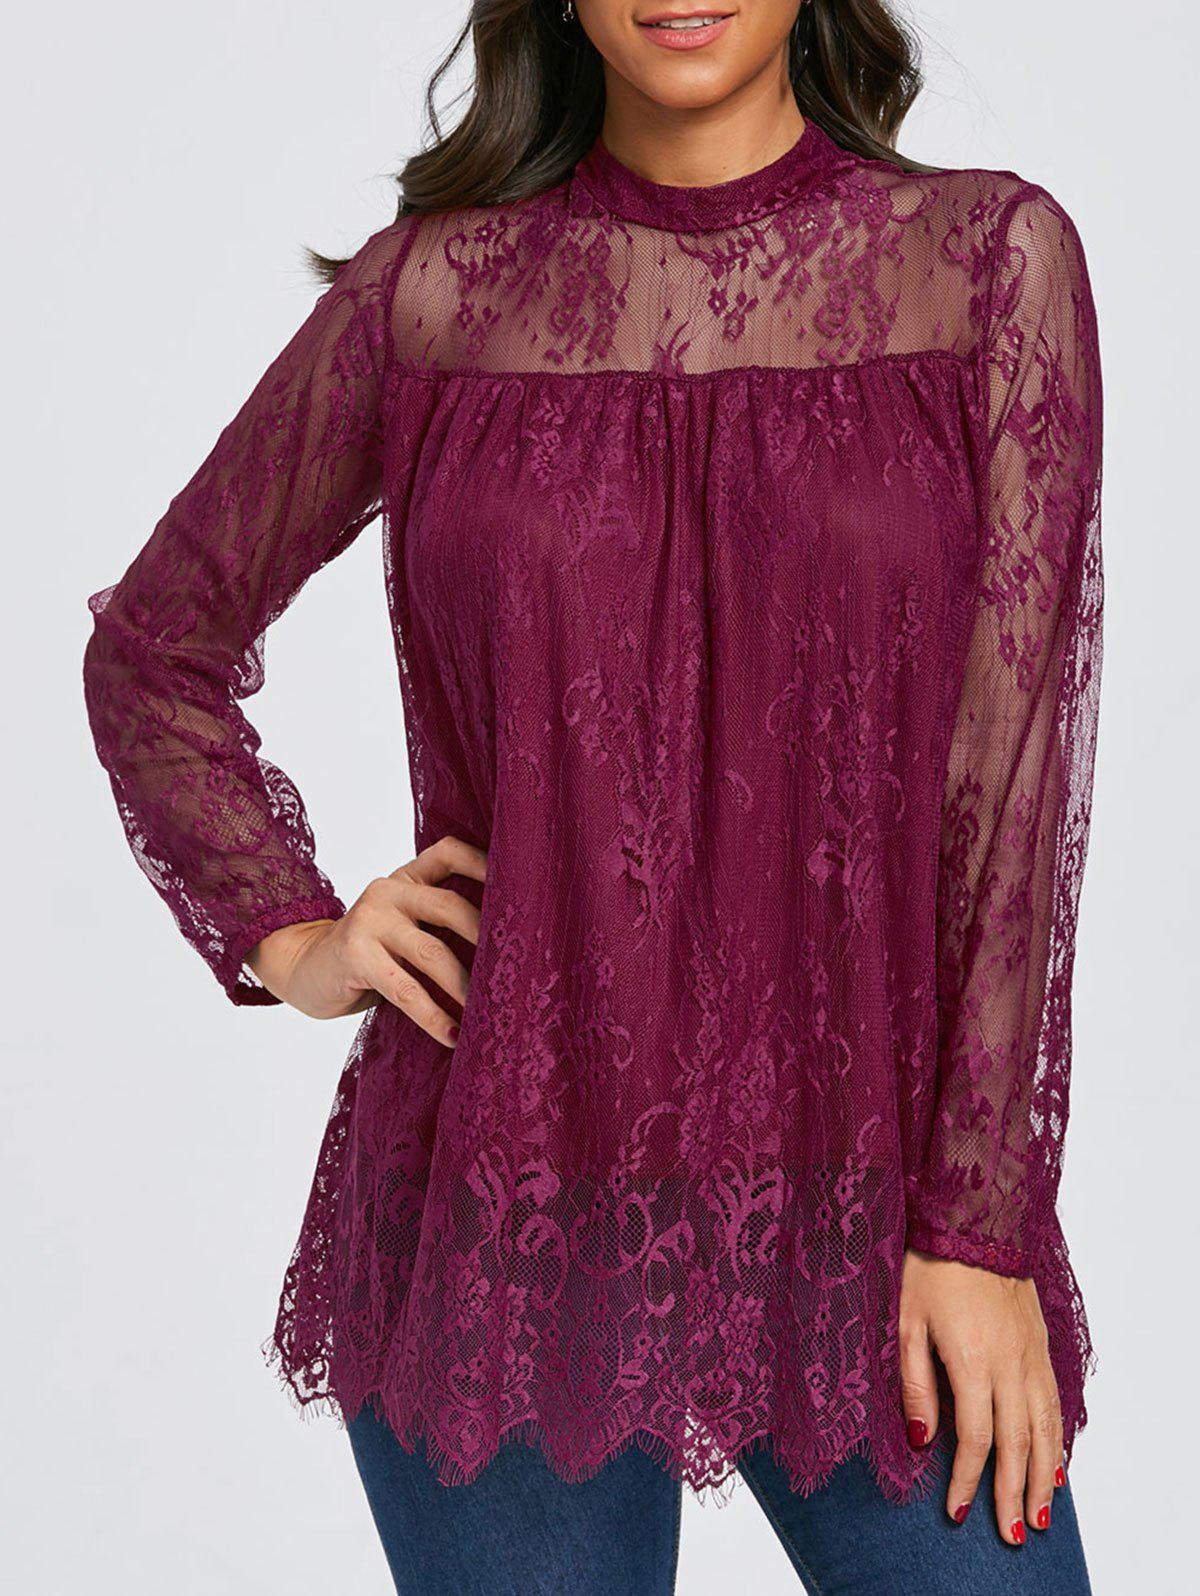 Cheap Mock Neck Sheer Lace Blouse